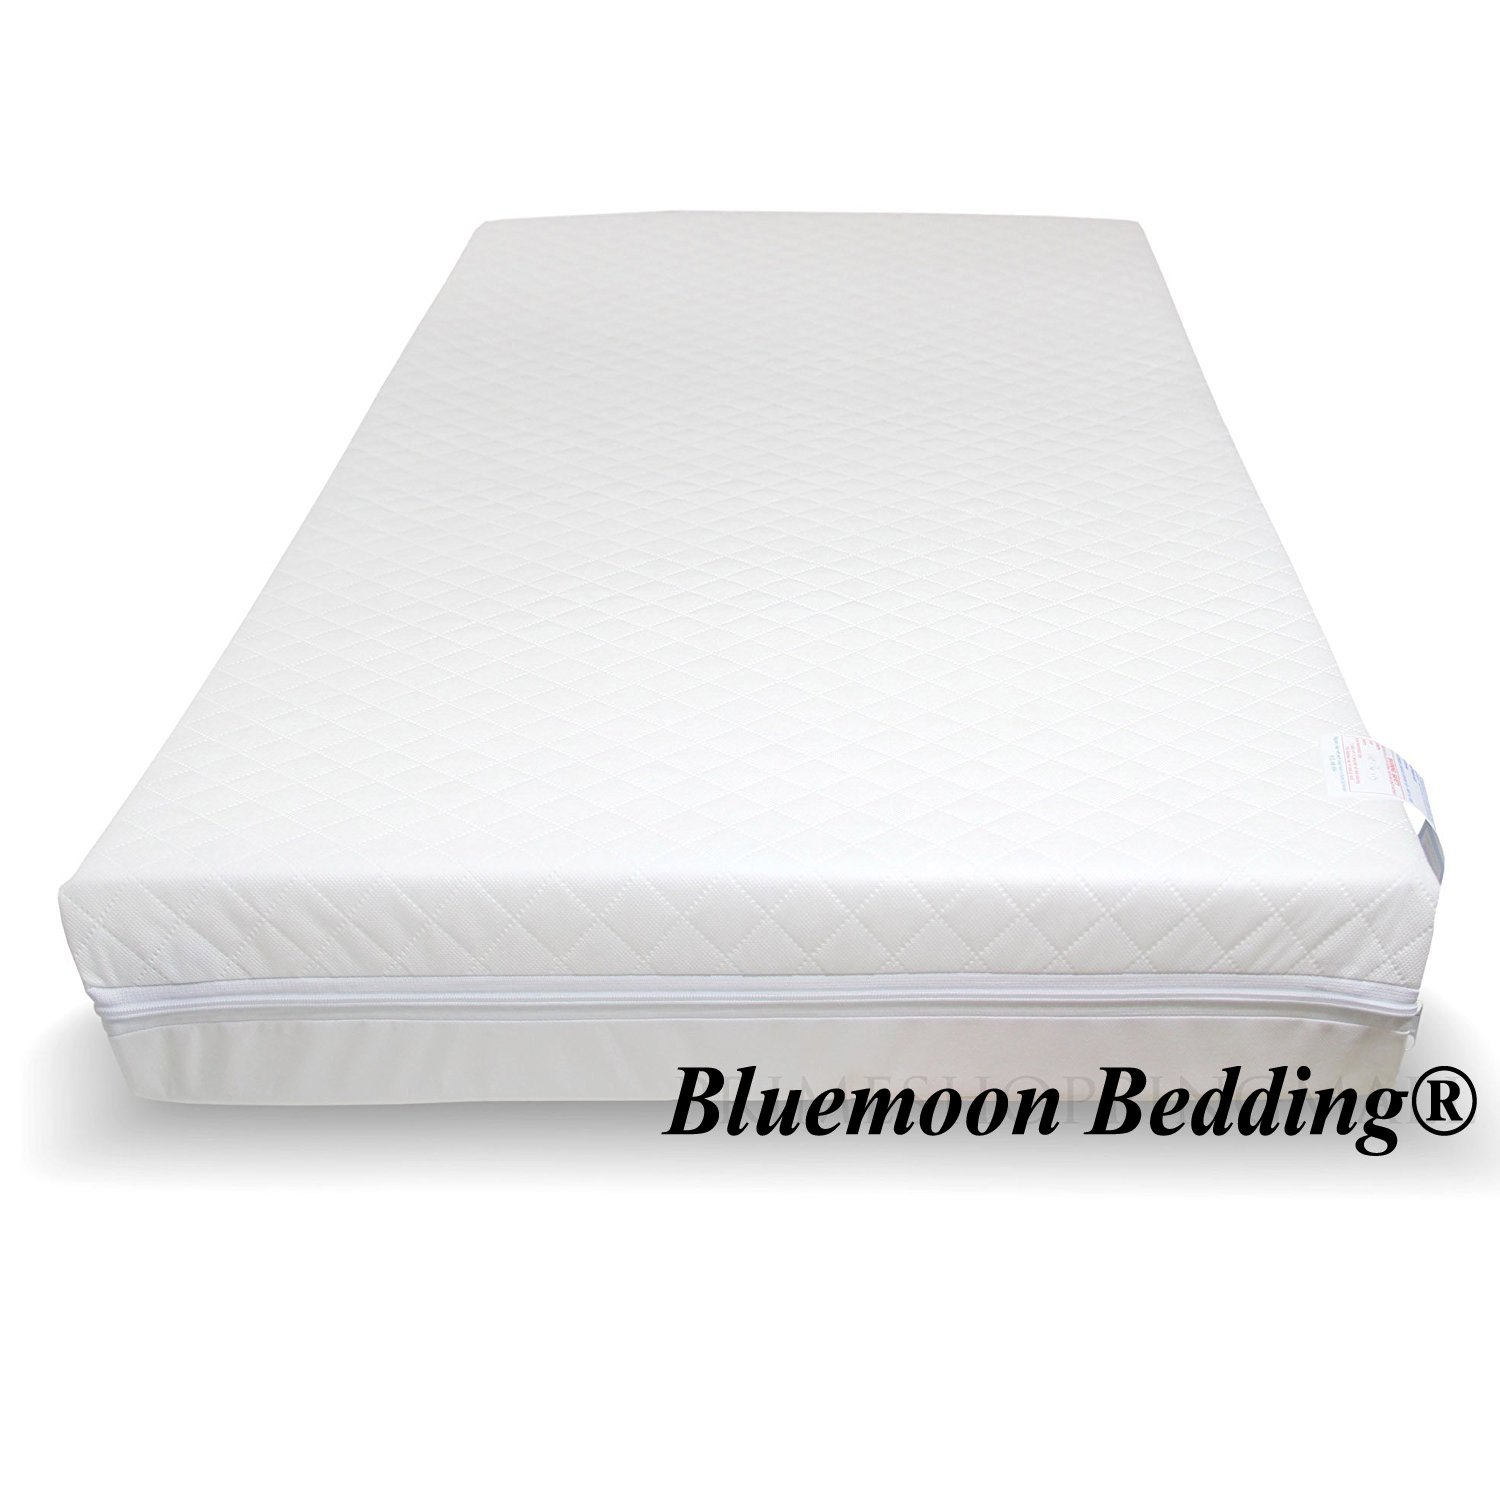 ALL SIZES QUILTED BABY COT BED/TODDLER MATTRESSES BREATHABLE & WATERPROOF (120x60x10 cm) Bluemoon Bedding®